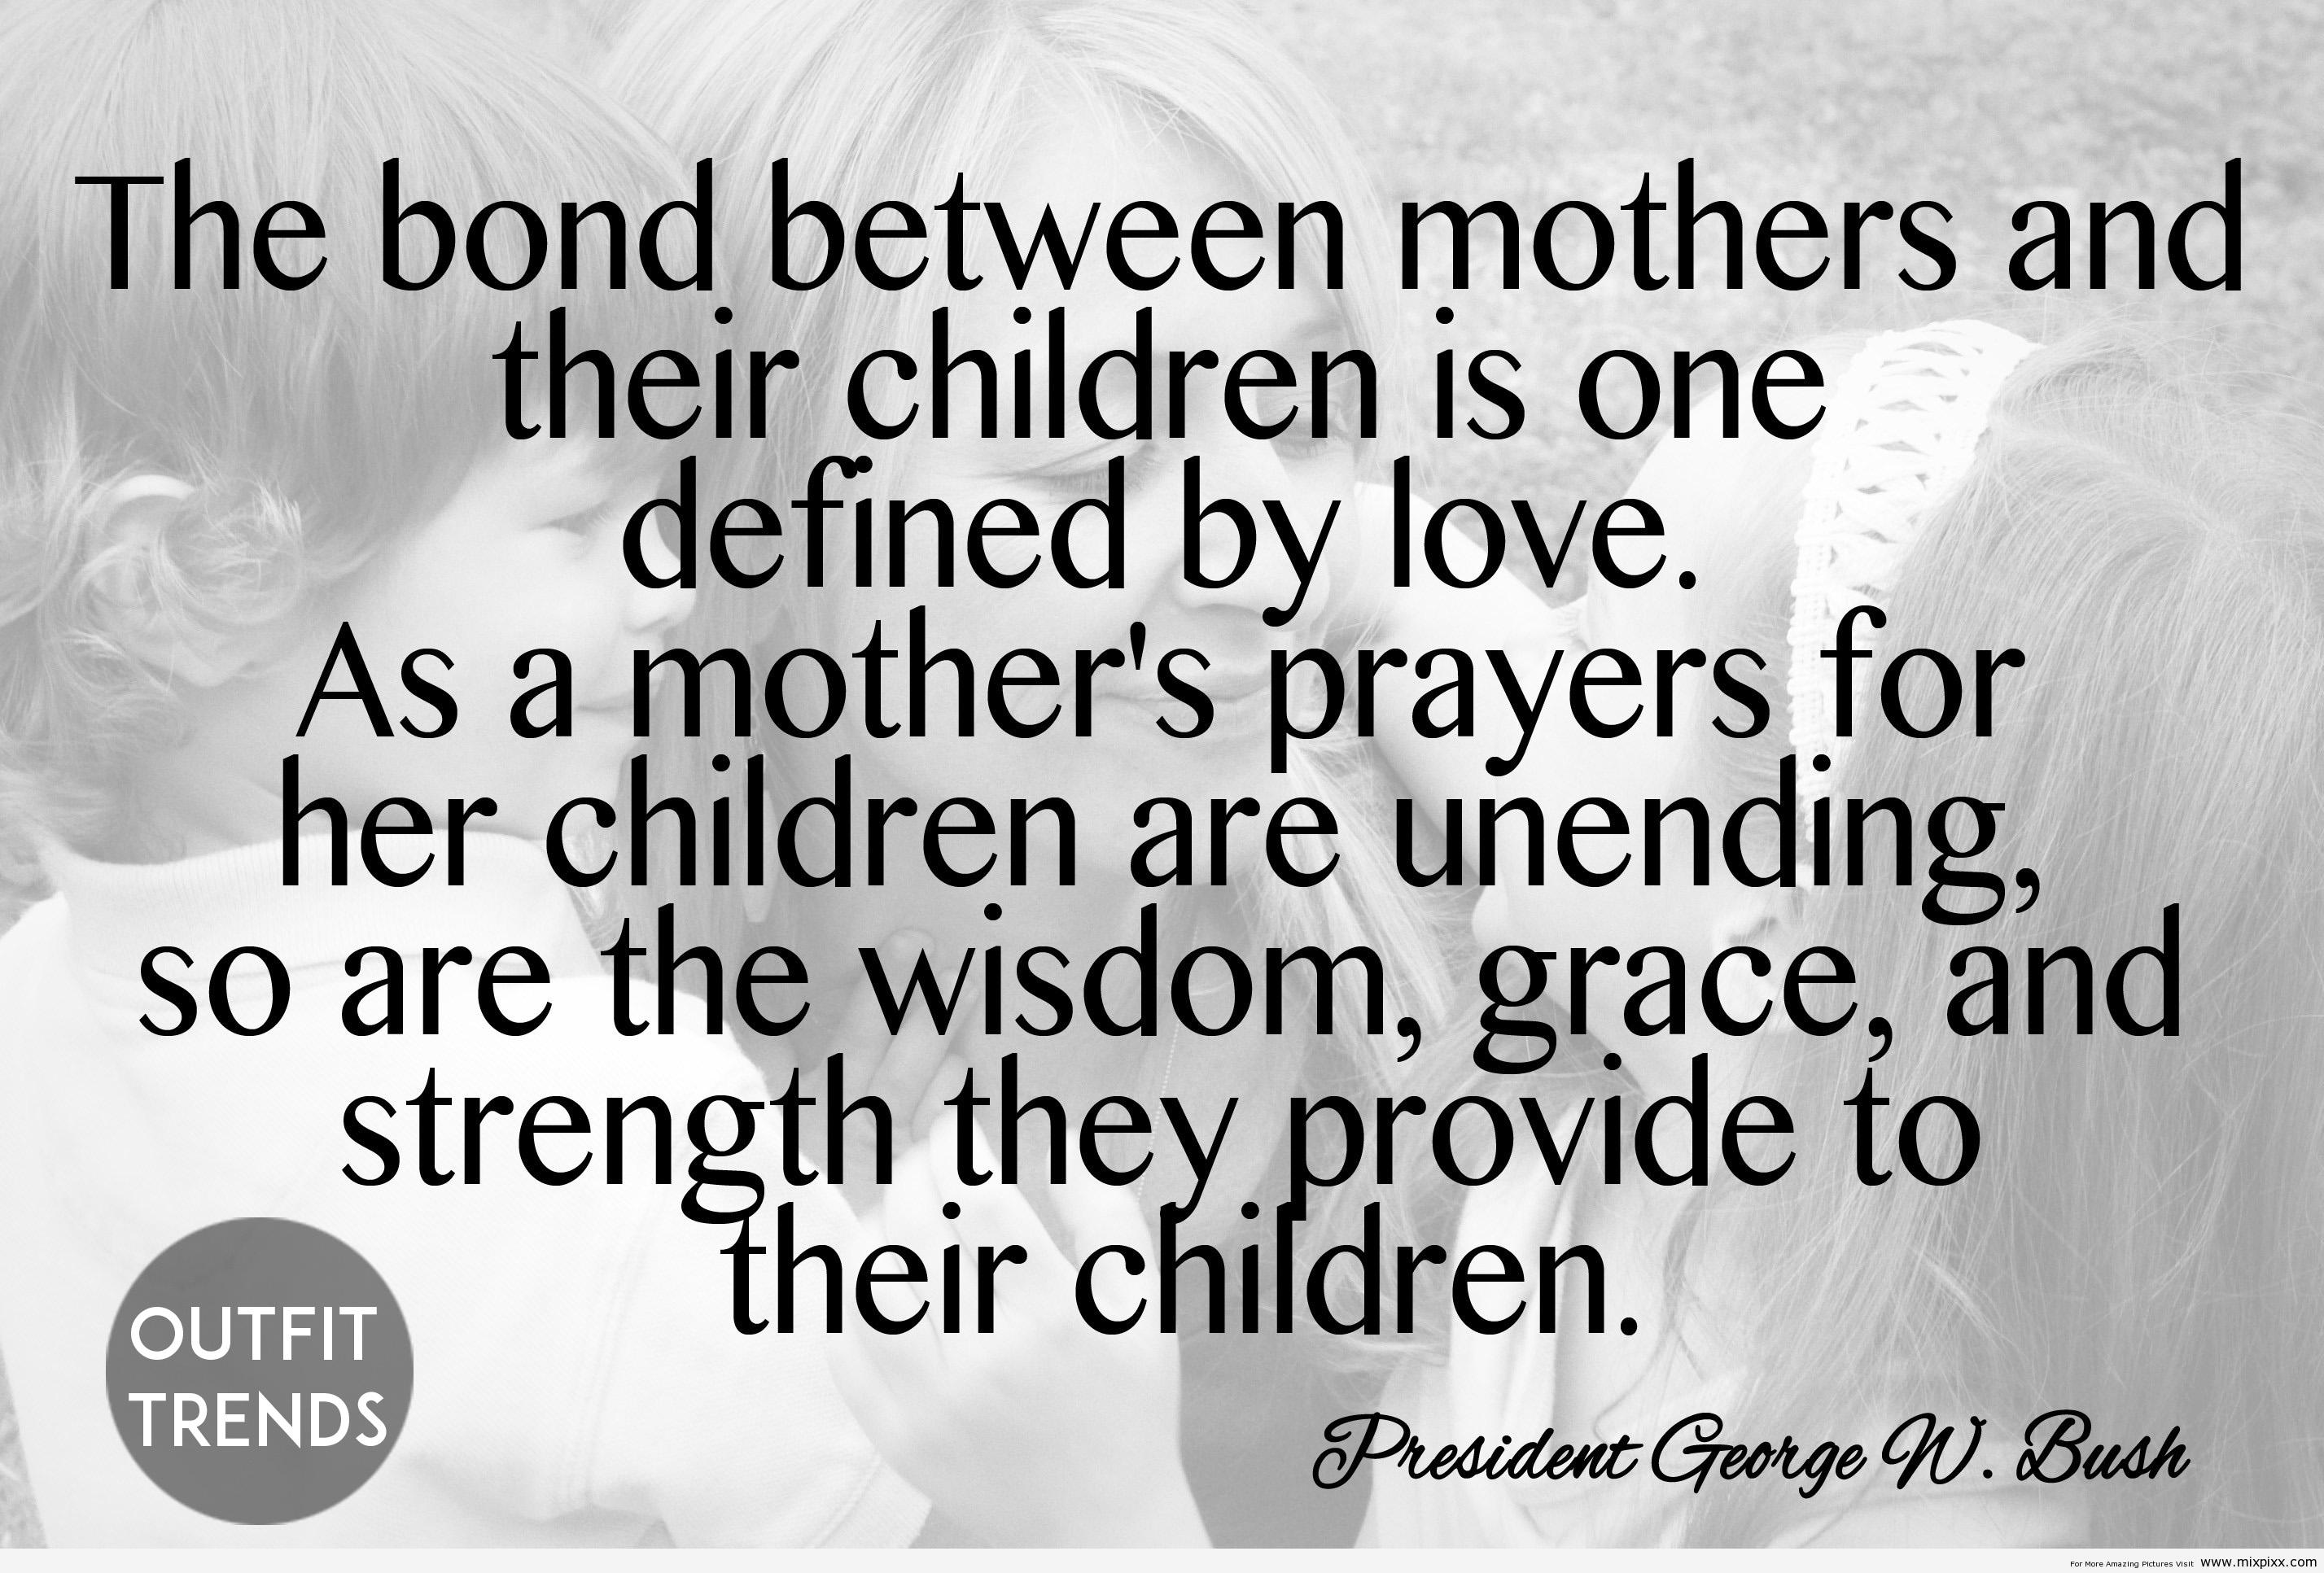 Quotes Children 50 Quotes About Mothersislamic And General Quotes On Mothers